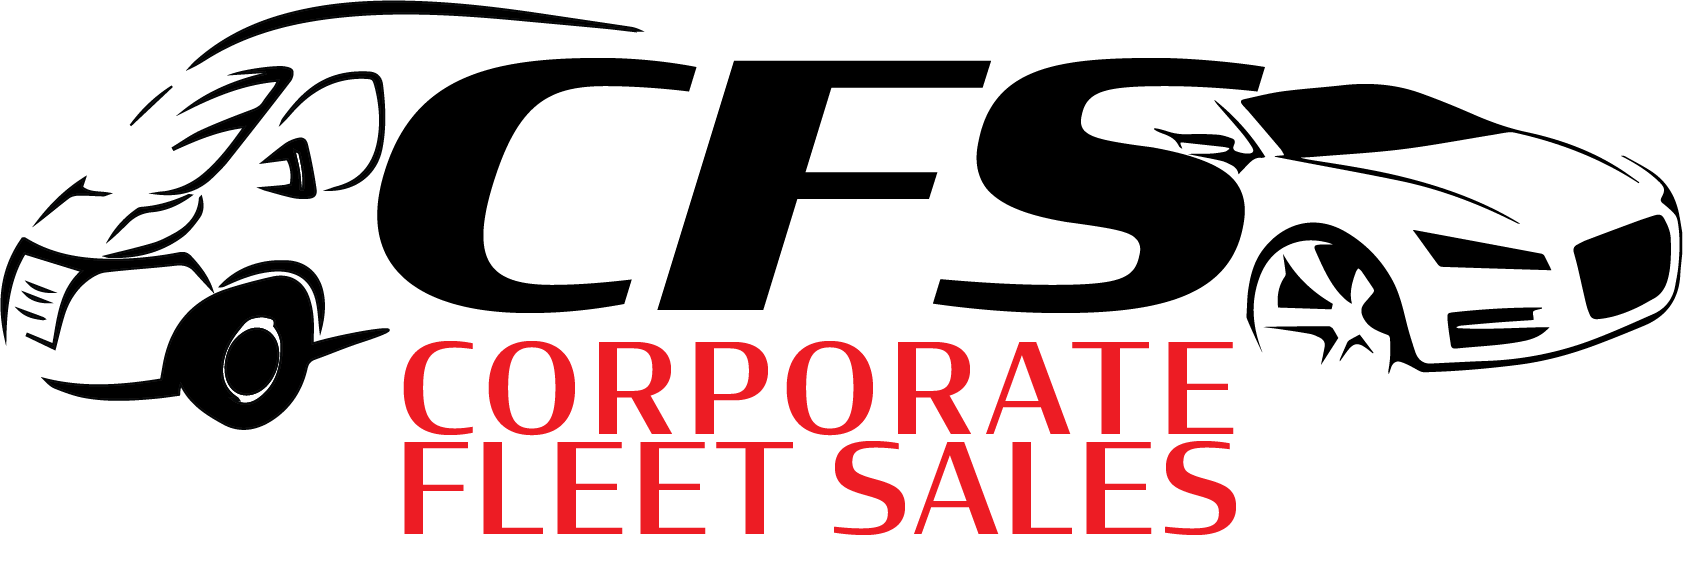 Corporate Fleet Sales Logo